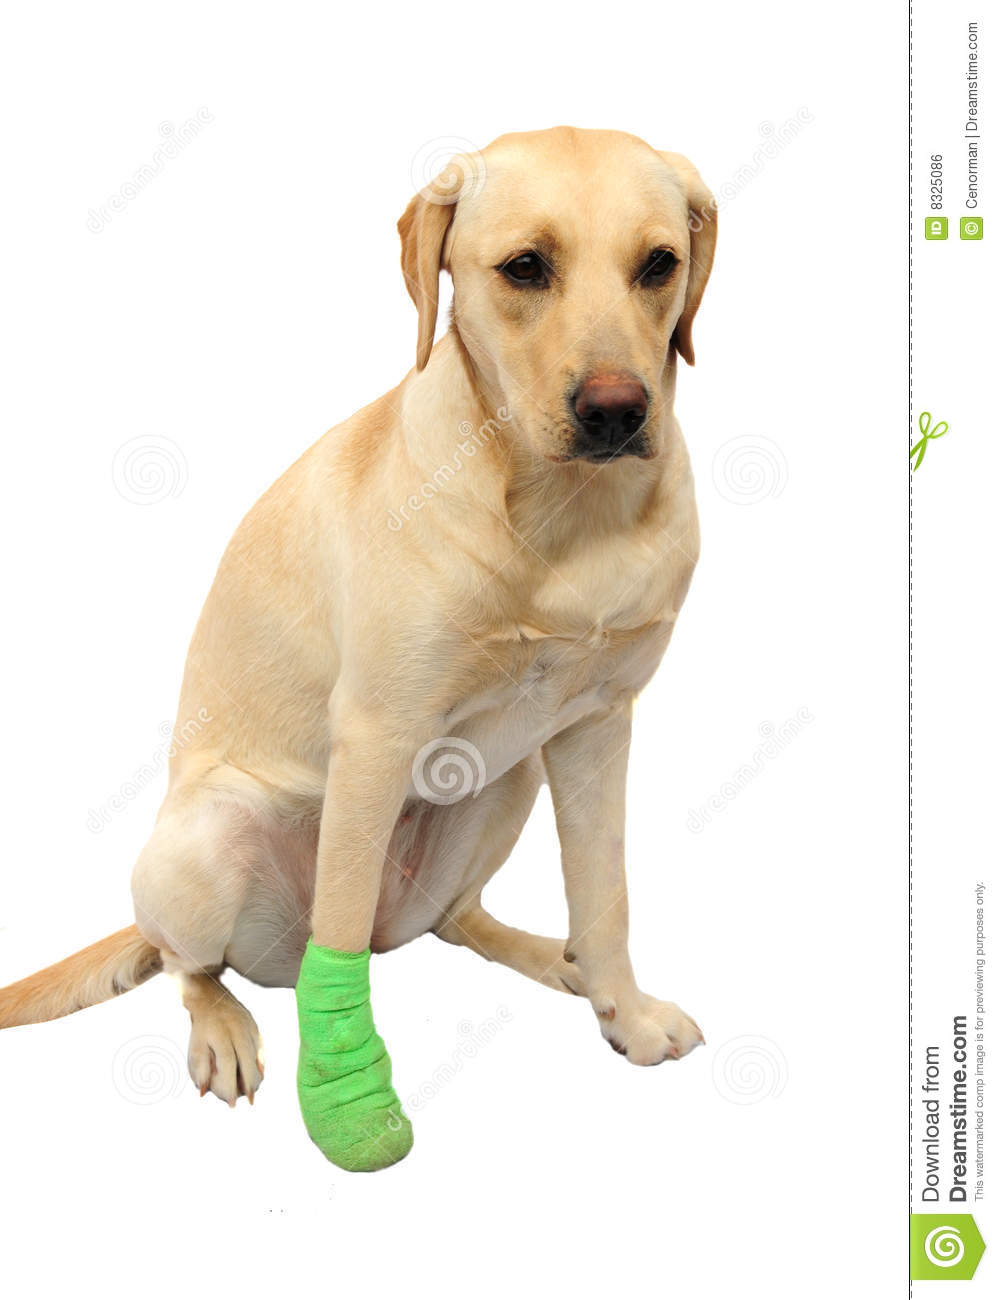 Labrador With Bandaged Foot Royalty Free Stock Image - Image: 8325086